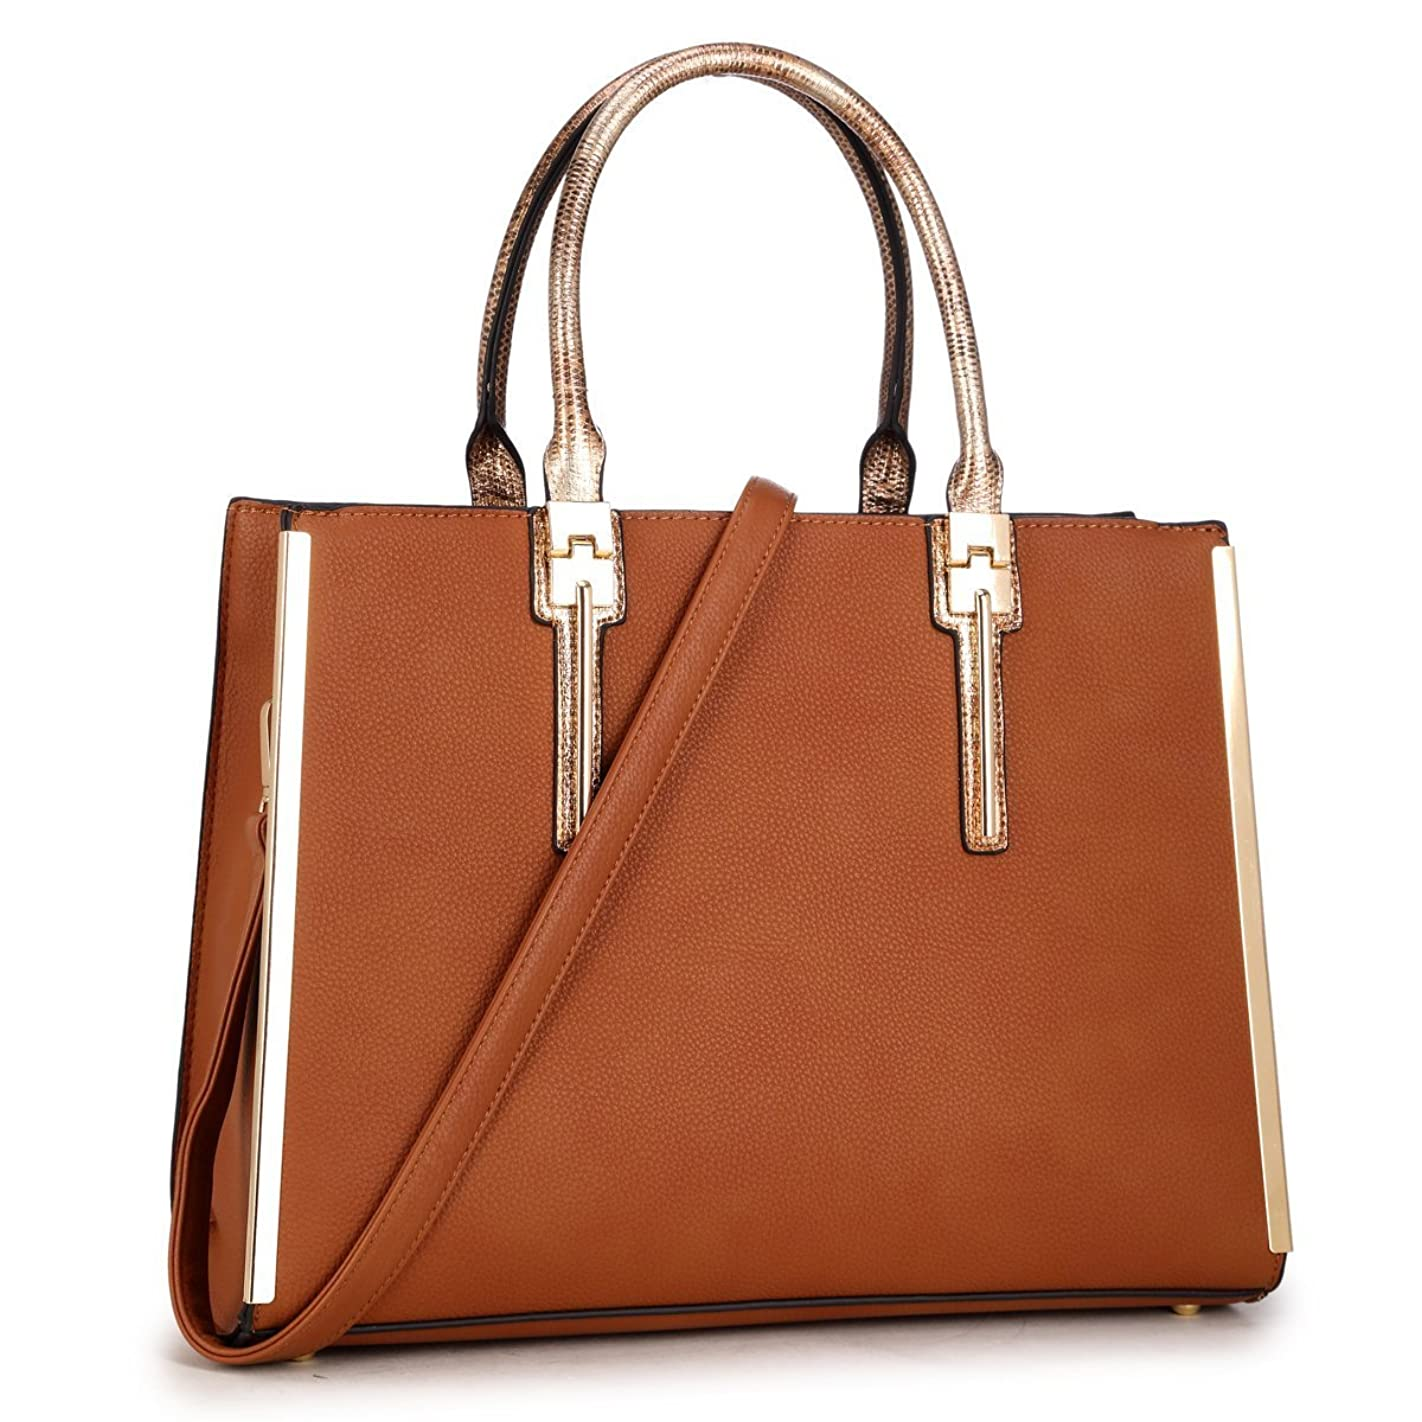 Laptop Tote Bag, PU Leather 14.7 Inch Lady Designer Satchel Lawyers Briefcase Casual Business Slim Bag For 13 Inch Tablet/Ultra-book/Macbook (KK-12-6244-BR) a59127325105